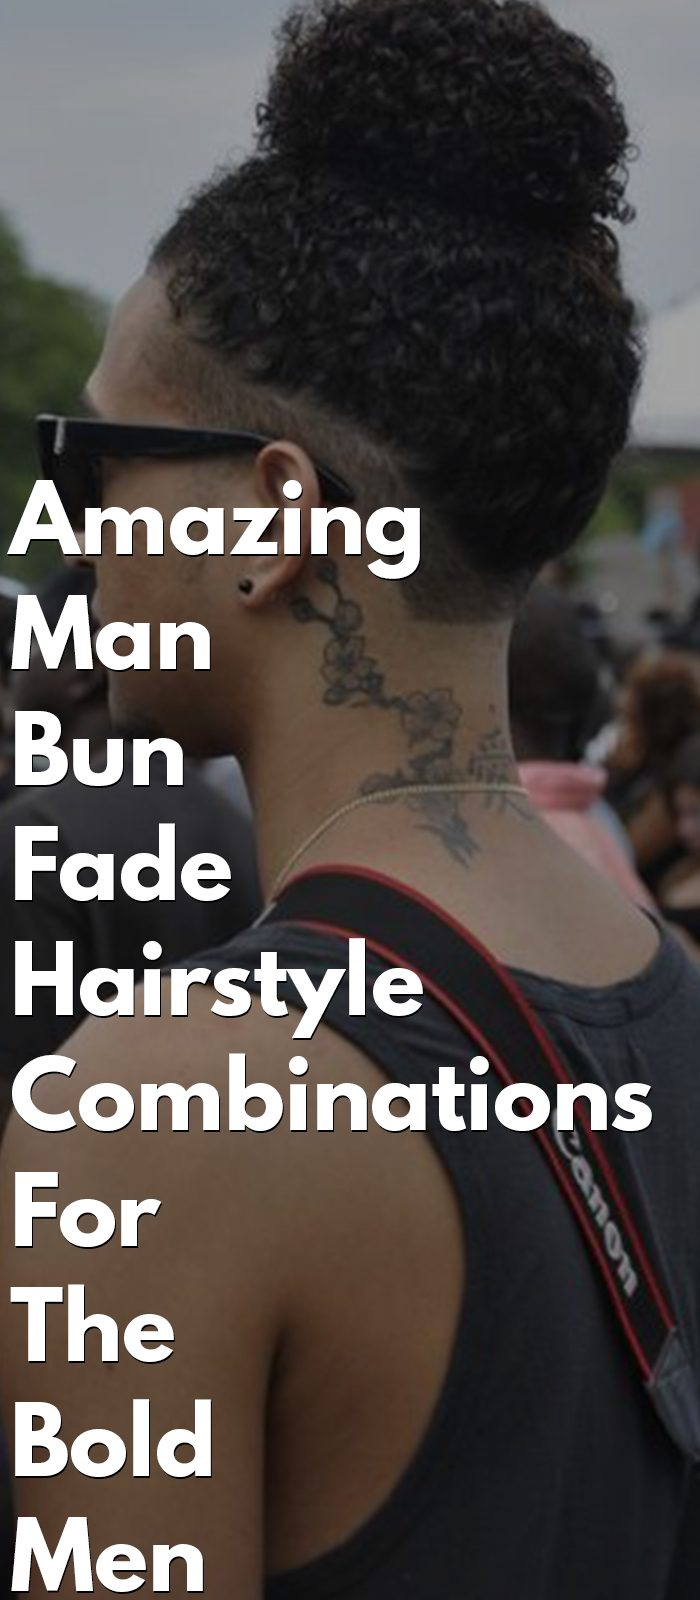 Amazing Man Bun Fade Hairstyle Combinations